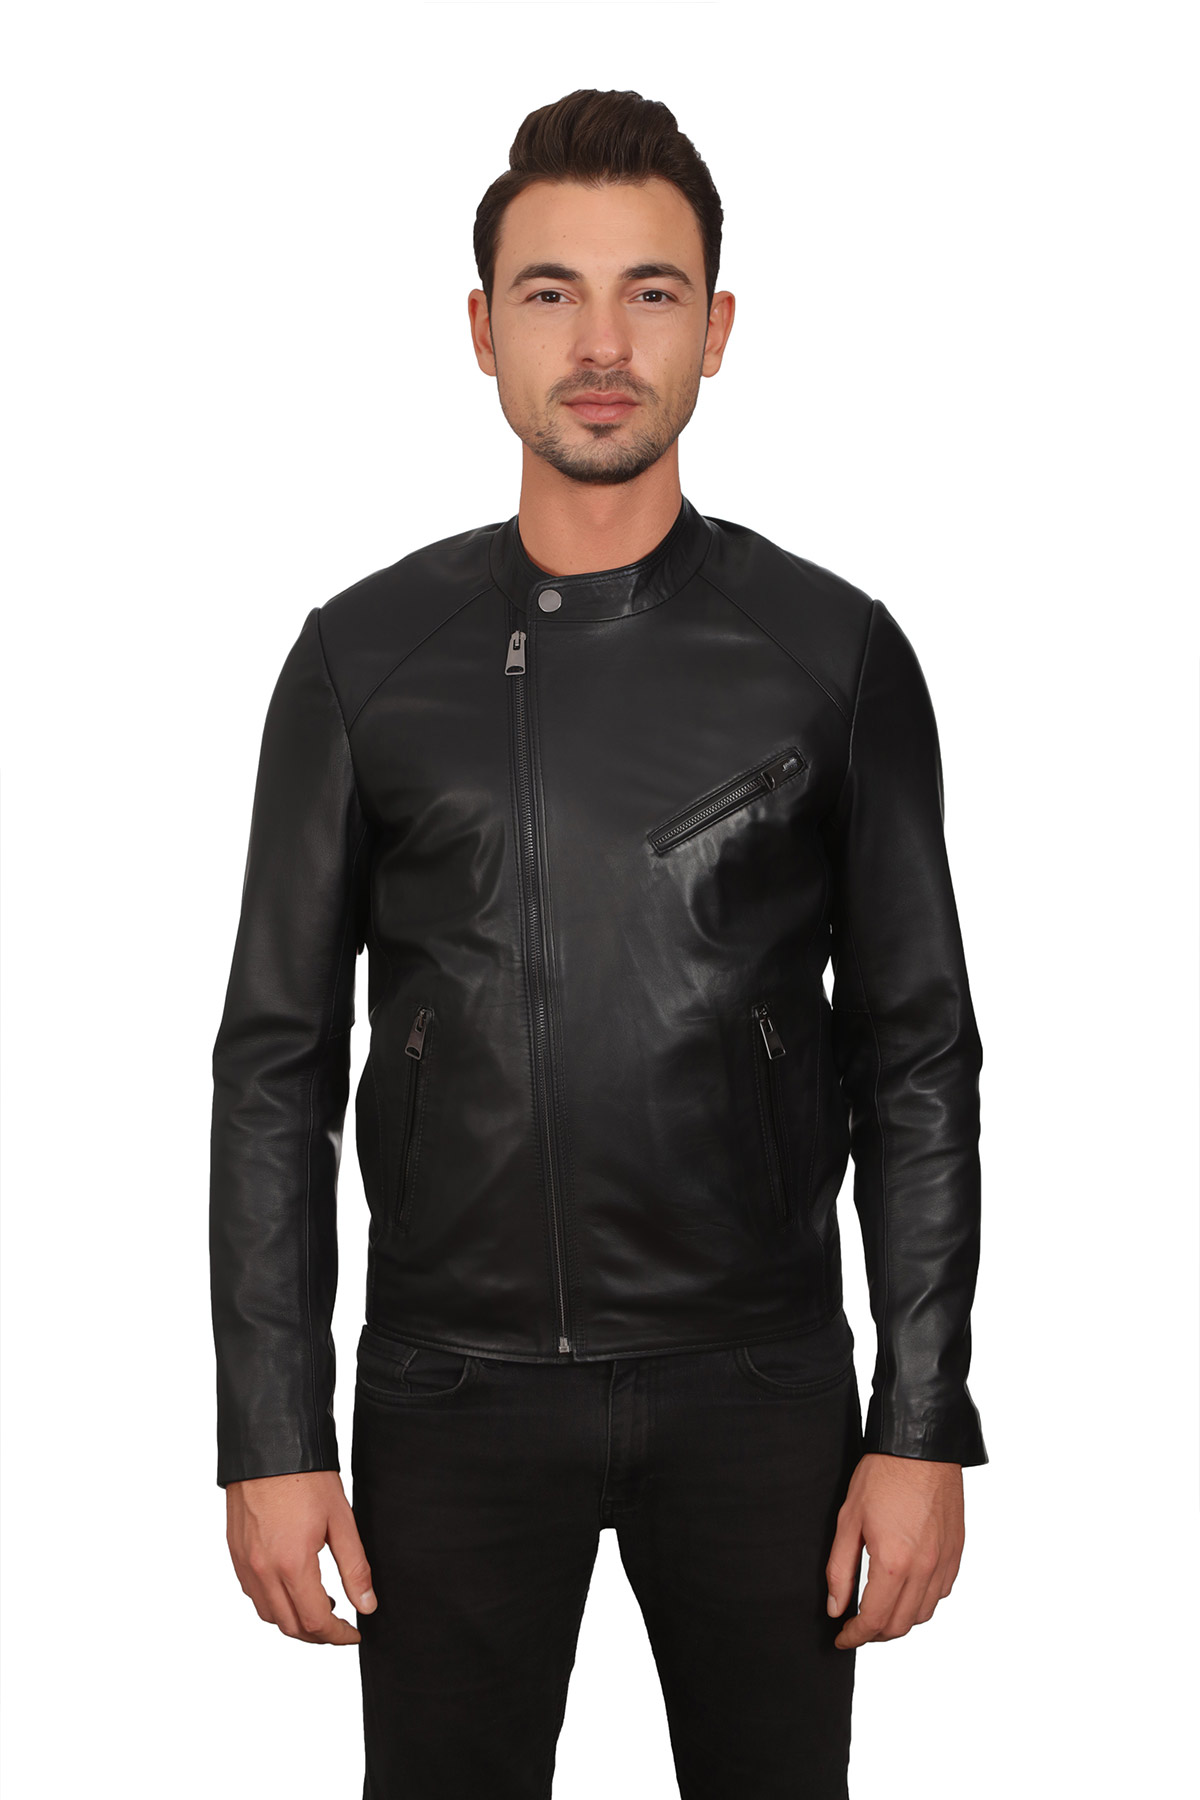 Leather Jackets For Men Near Me